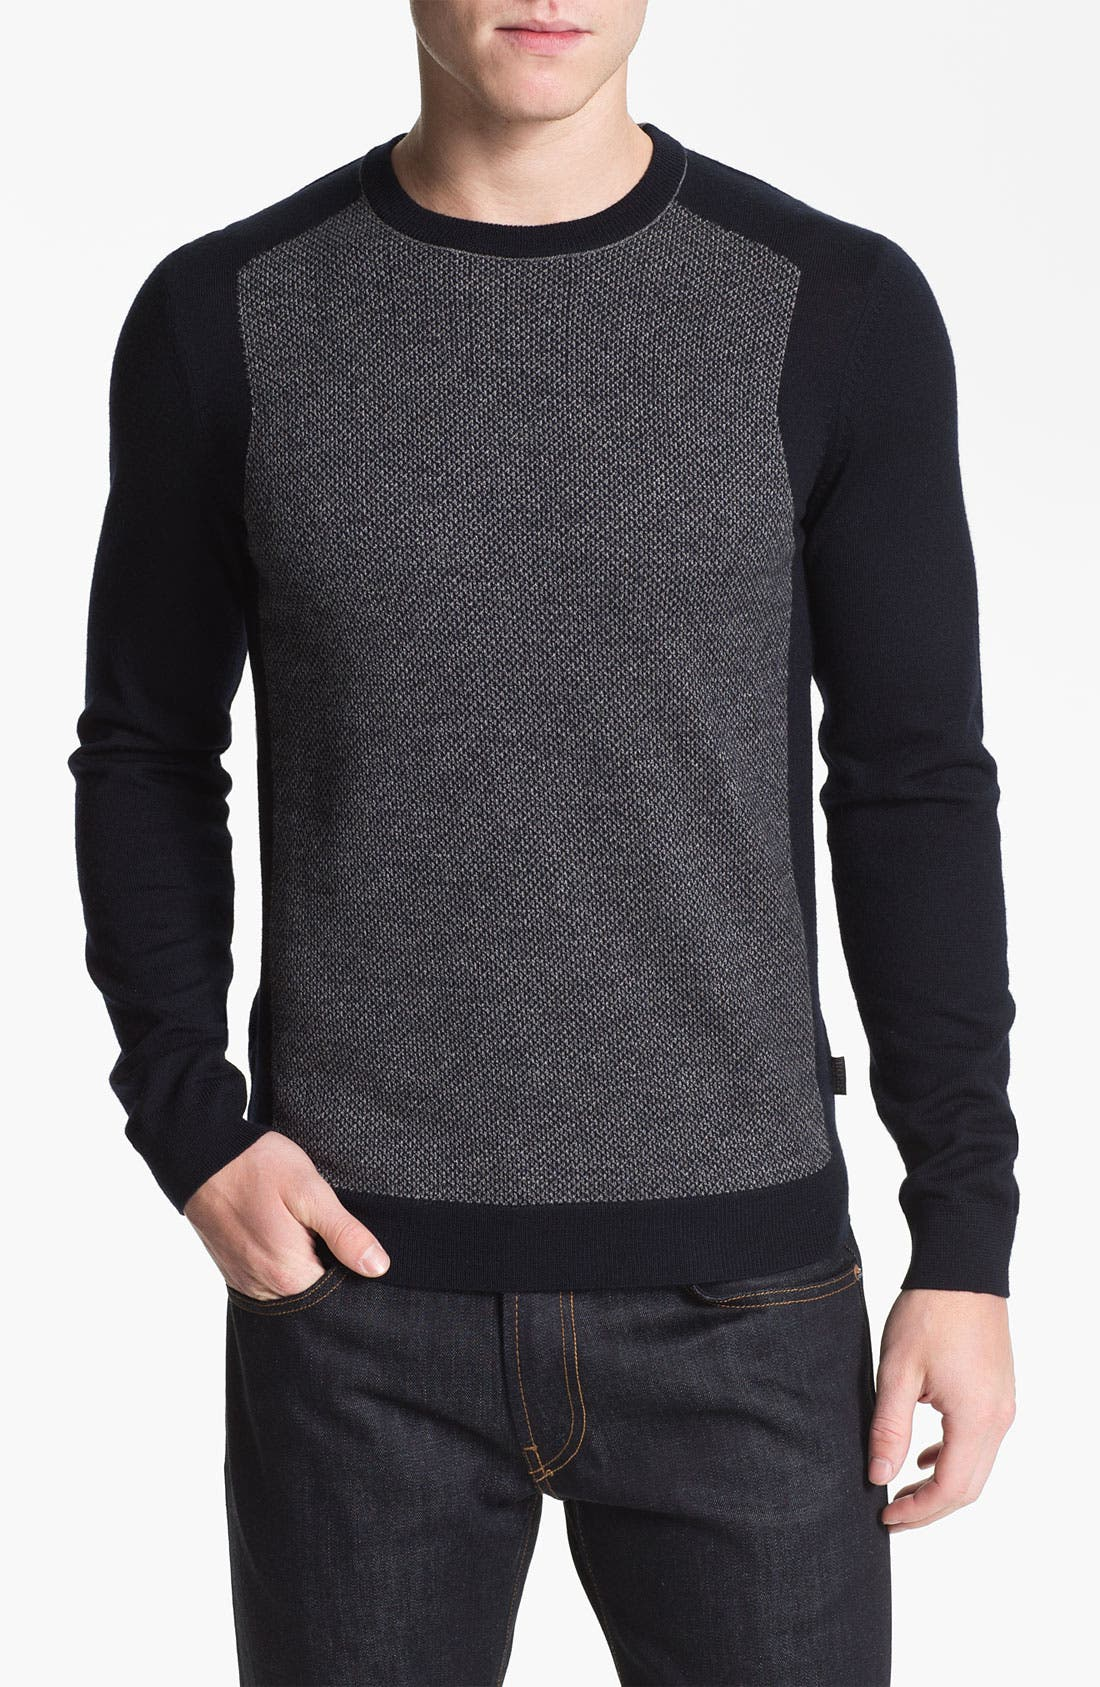 Alternate Image 1 Selected - BOSS Black 'Herschel' Wool Crewneck Sweater